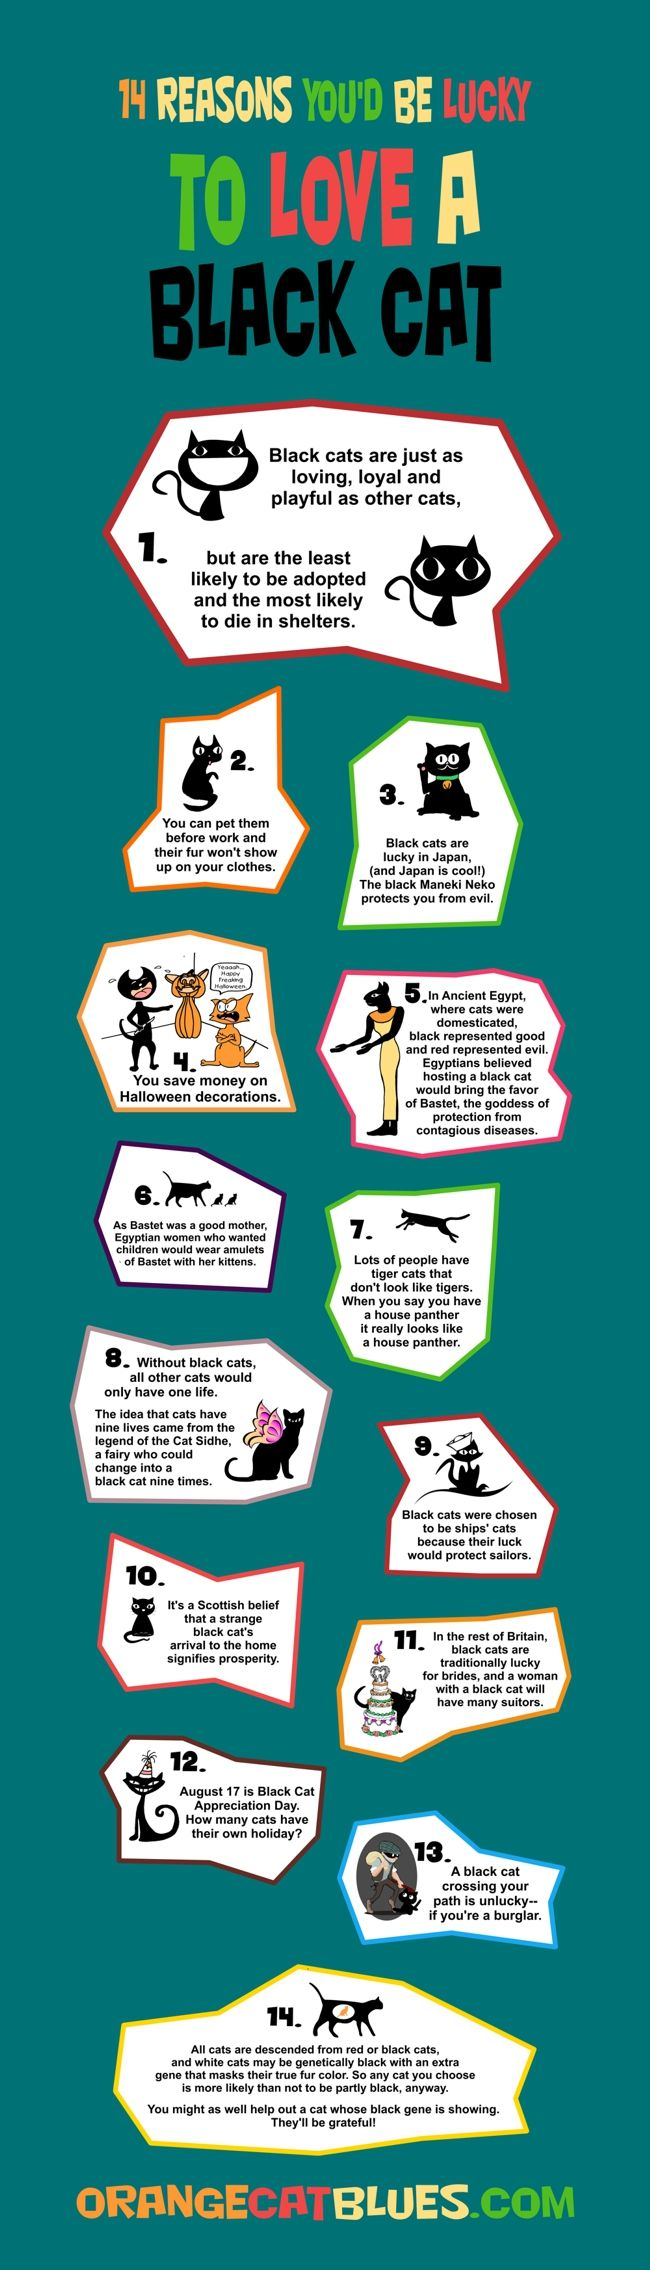 14 reasons why to love a black cat